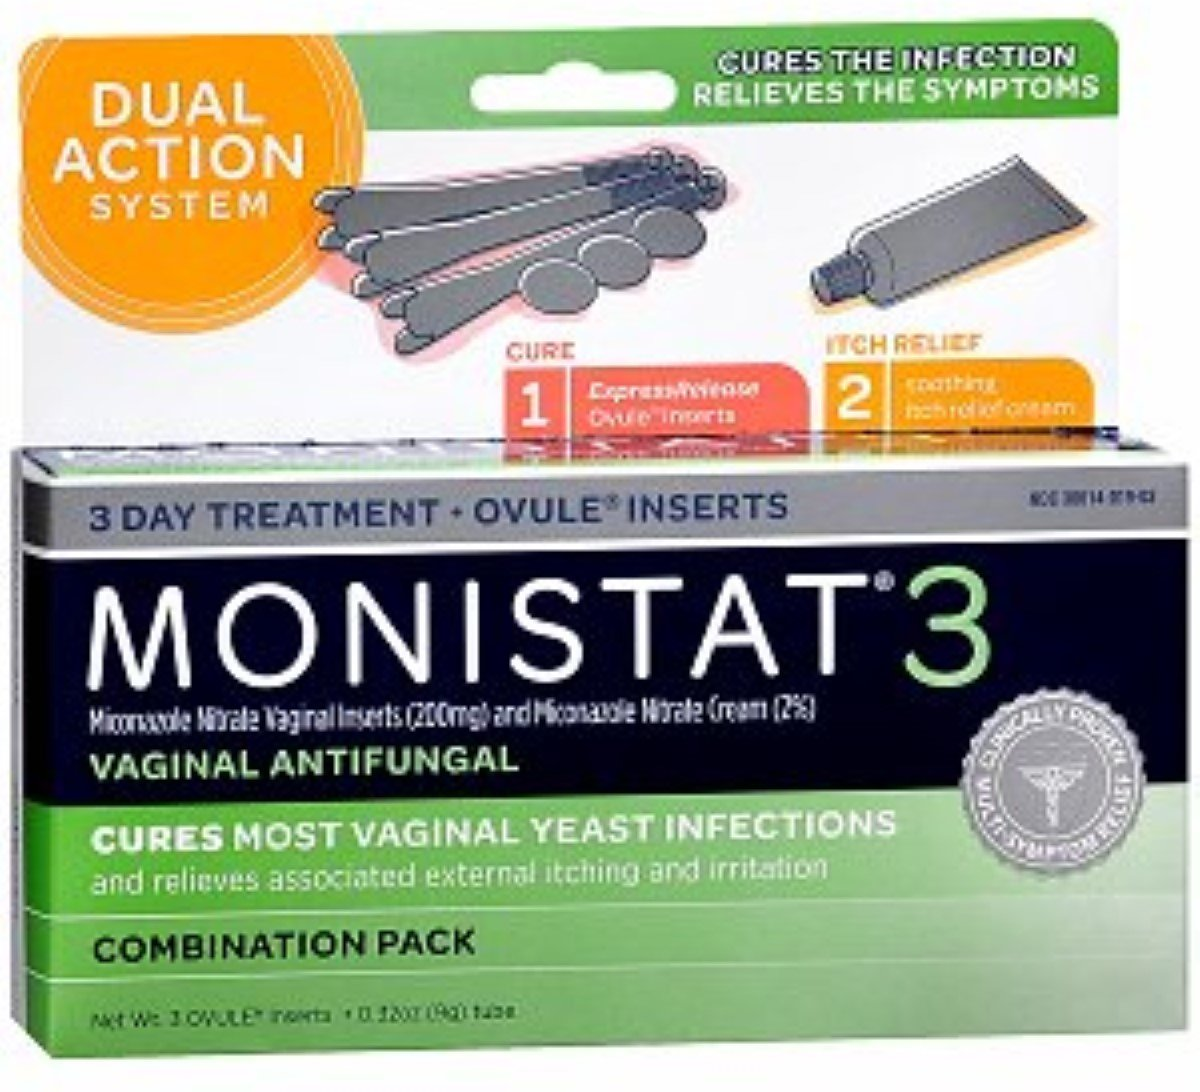 Monistat 3 Vaginal Antifungal, Ovule Inserts Combination Pack 1 Ea (pack of 7)